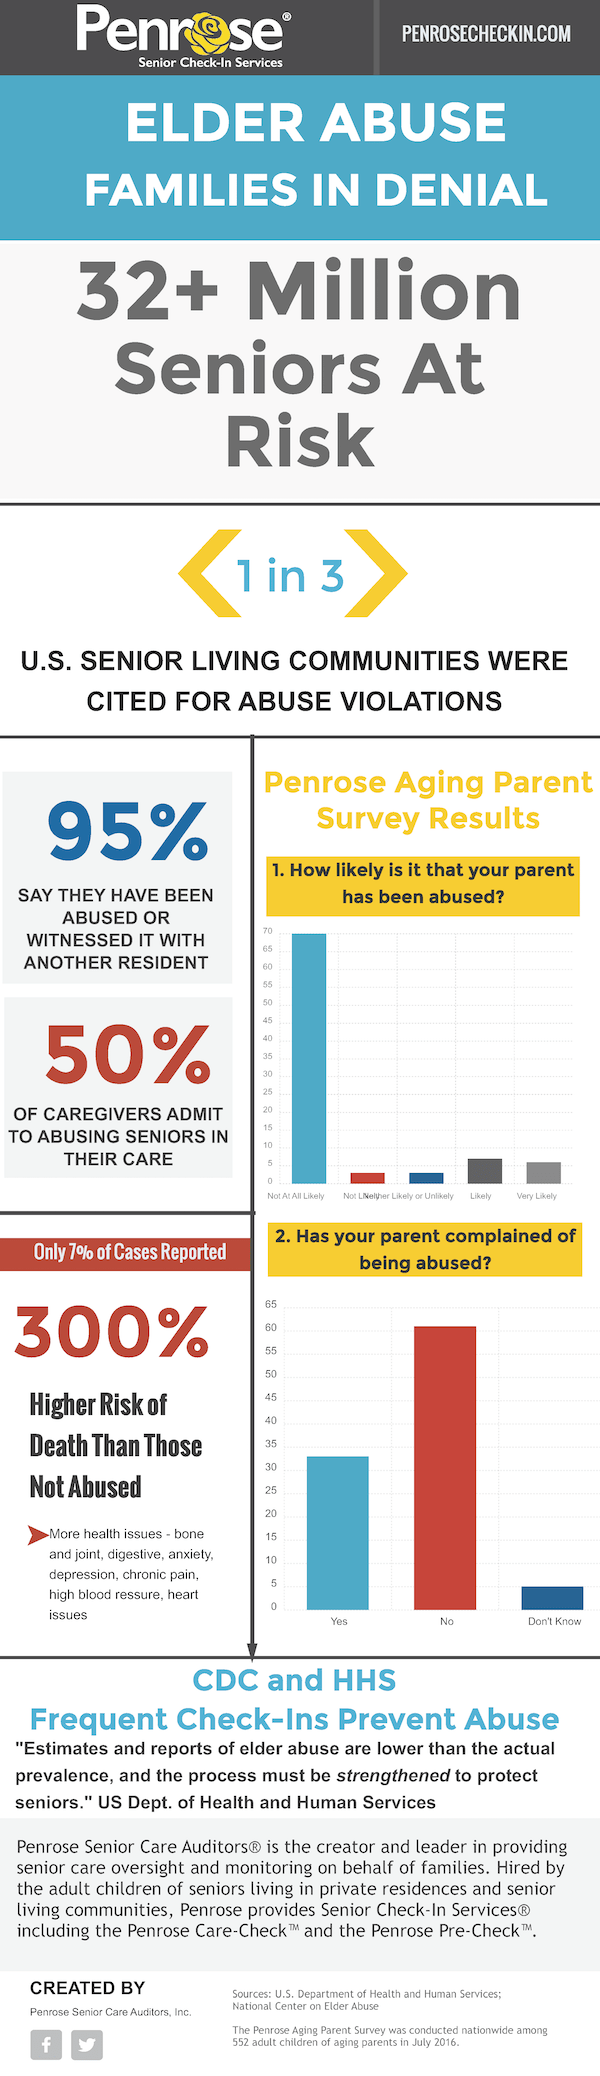 penrose-elder-abuse-disconnect-graphic